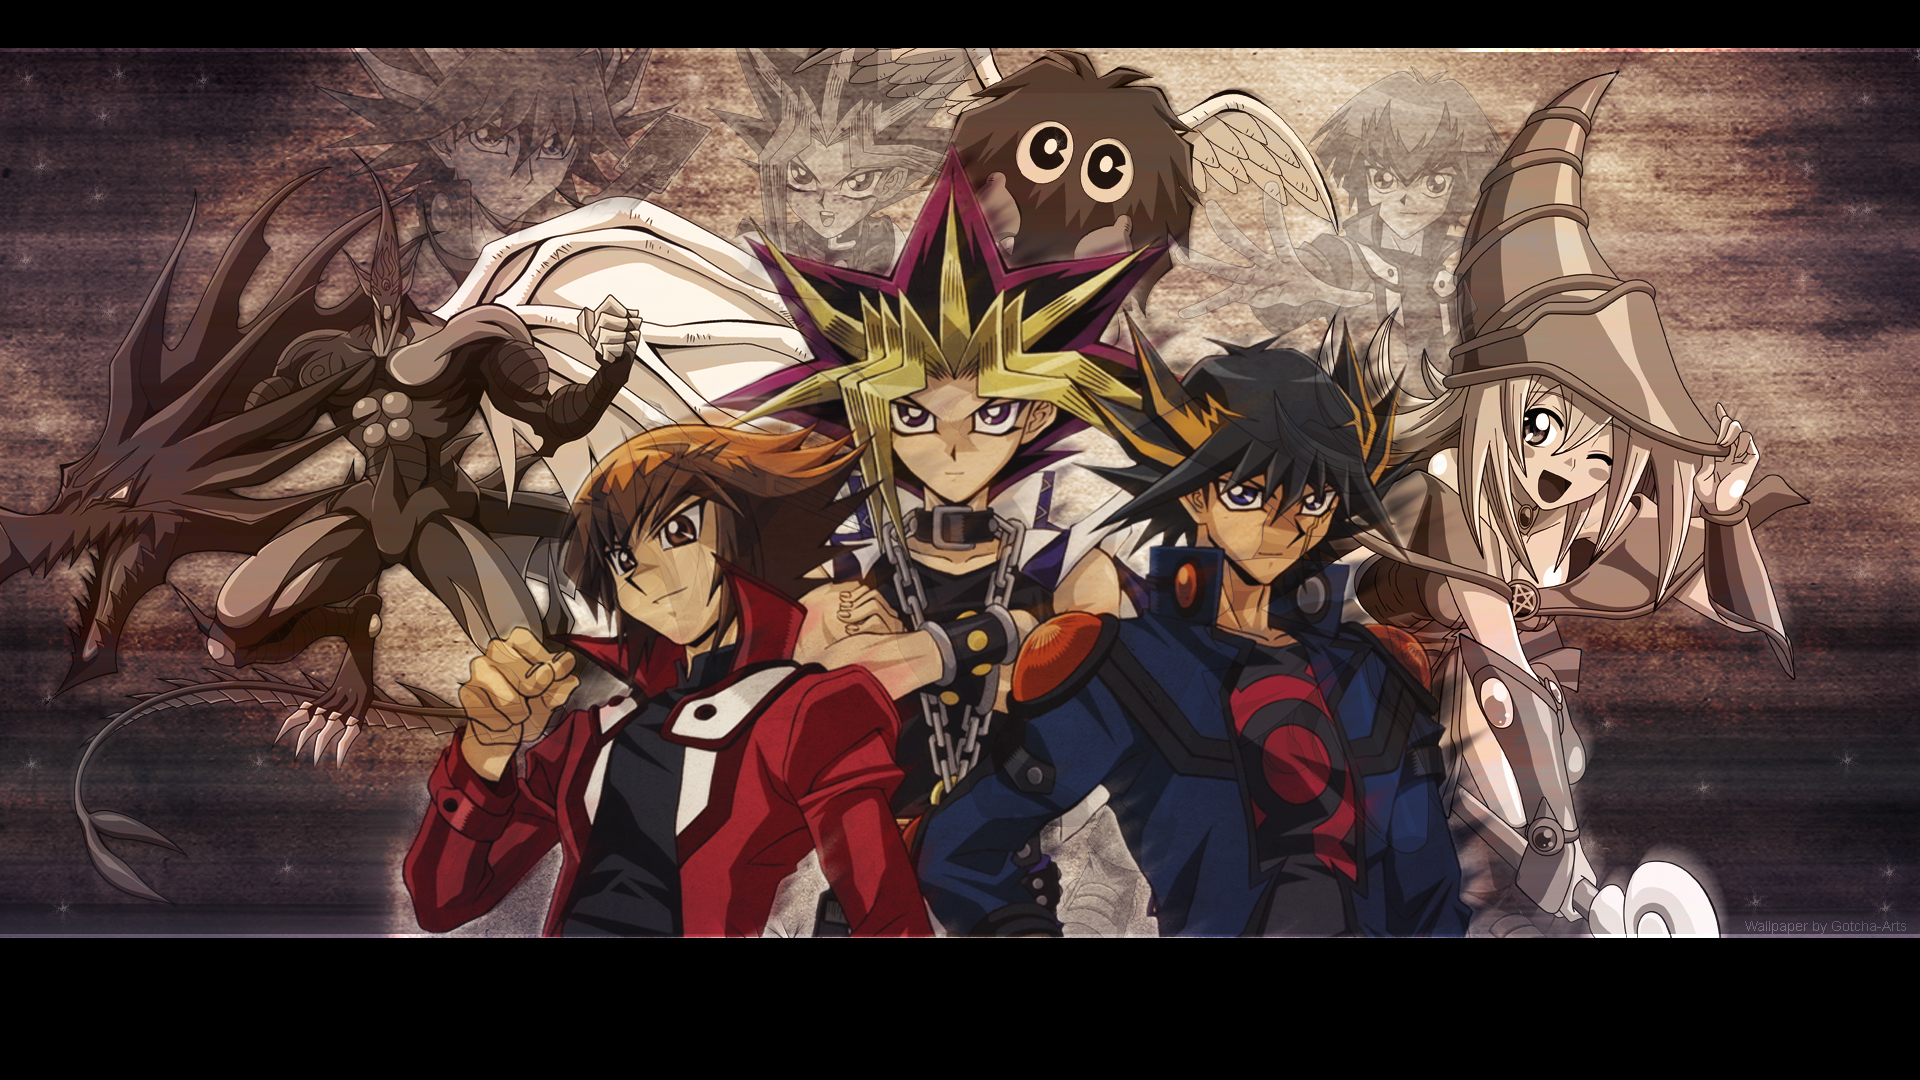 download wp contentuploads201407yu gi oh wallpaper by corki